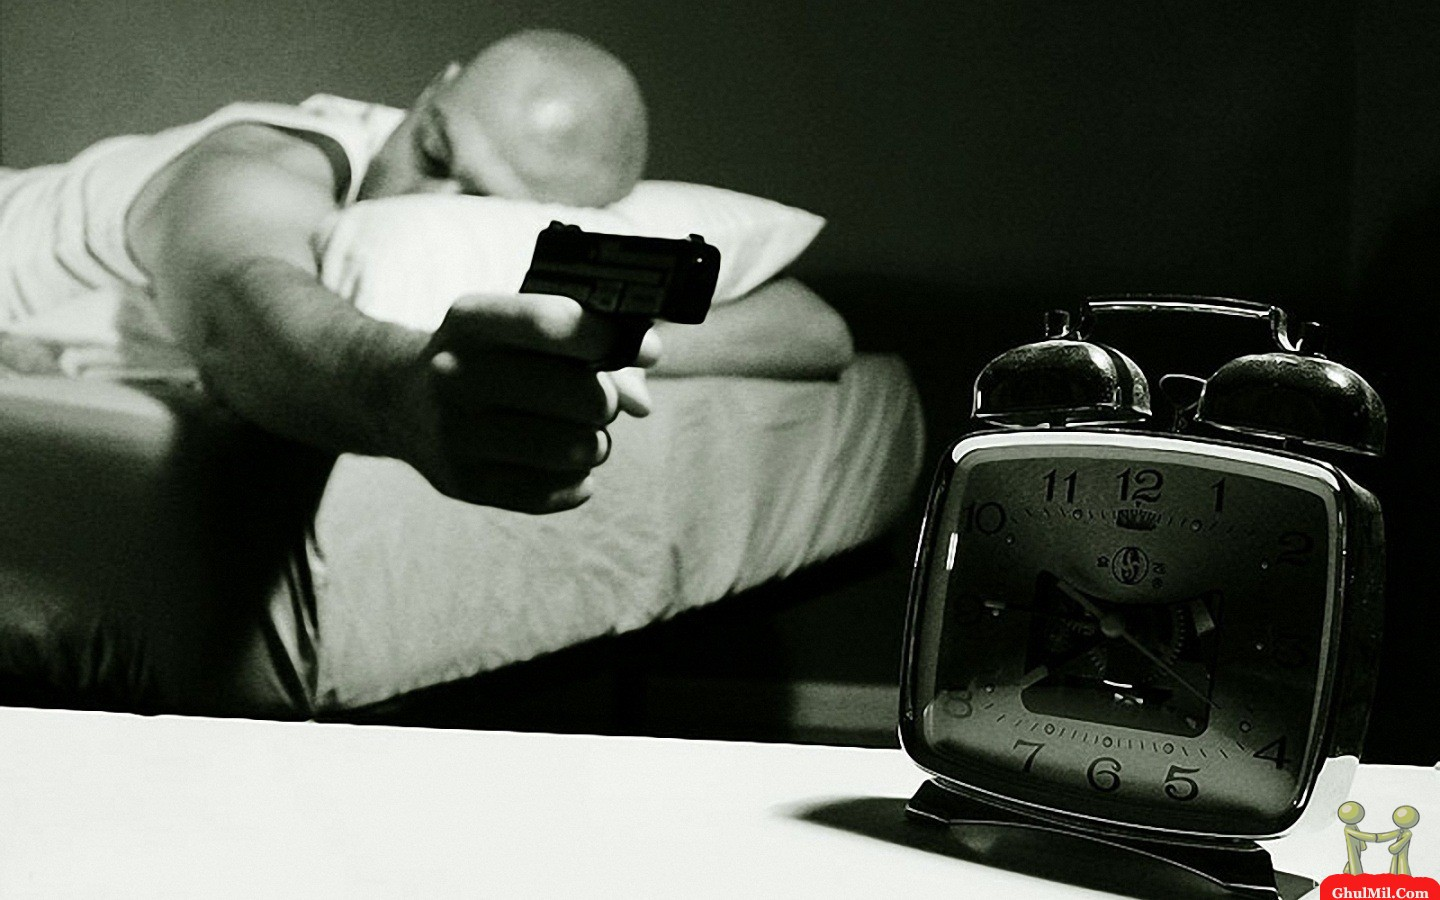 shoot-the-clock-during-sleep-funny-picture.jpg